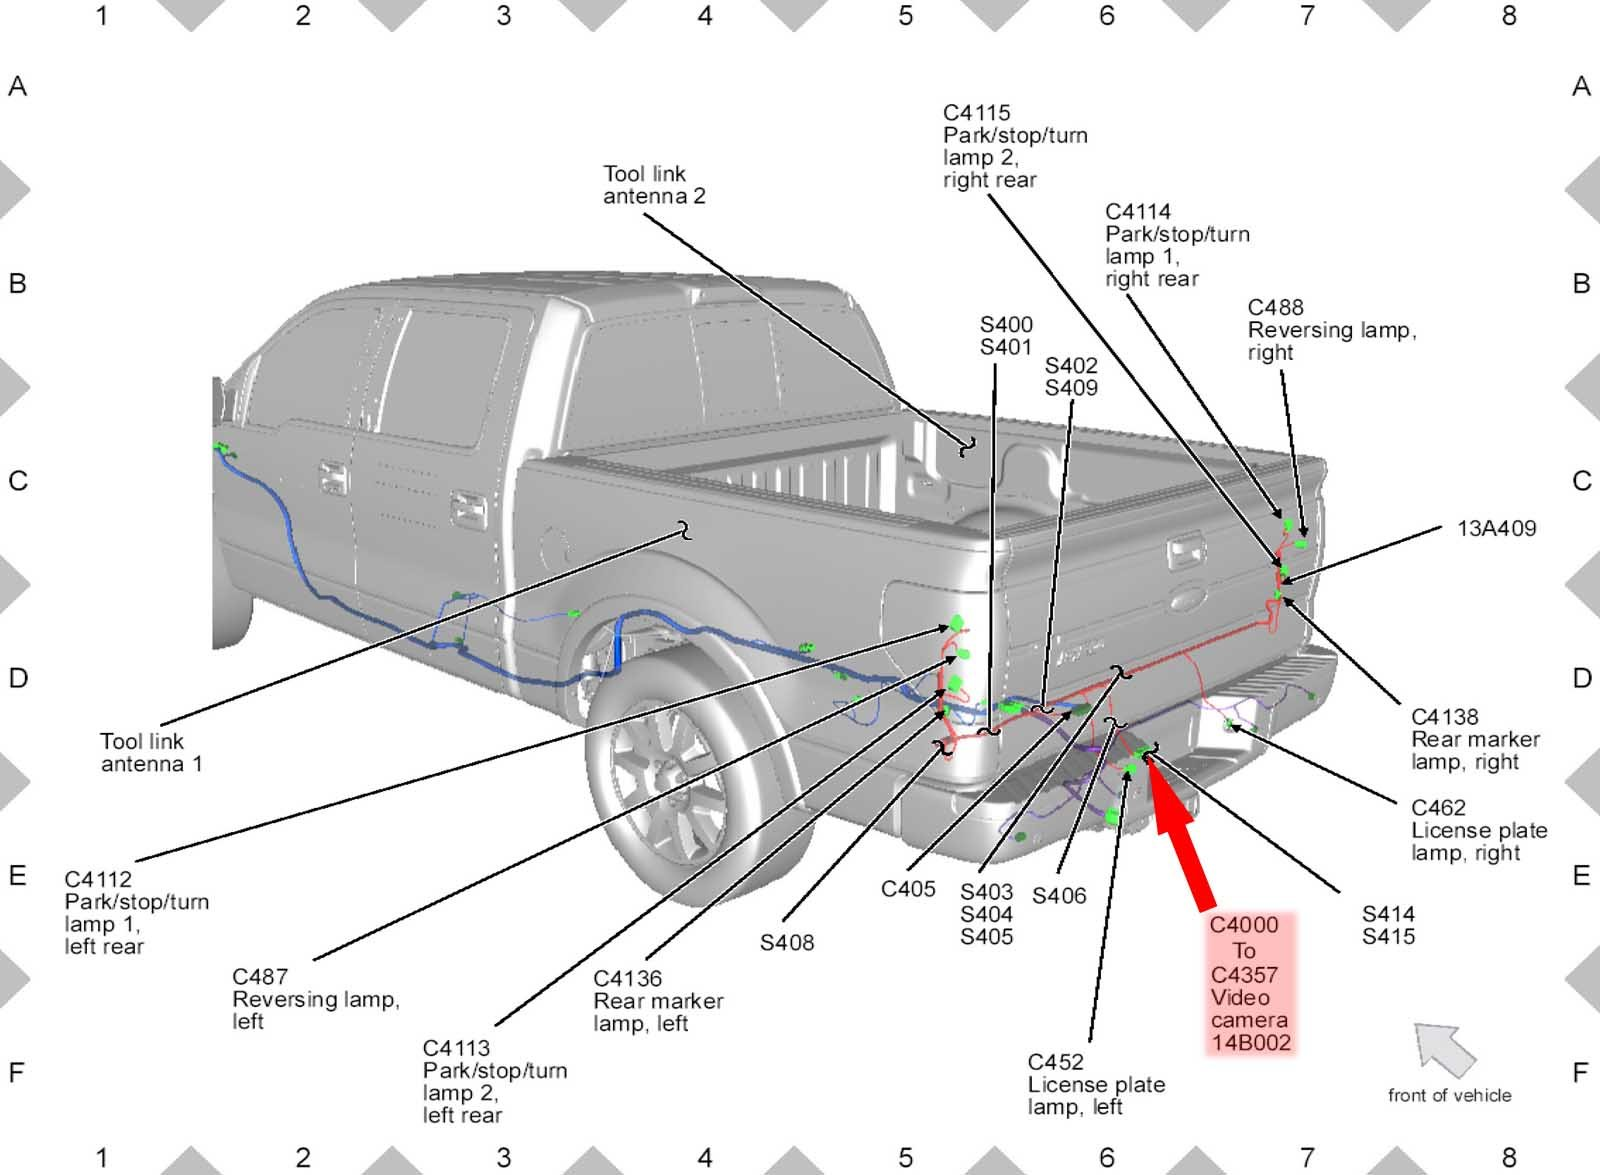 hight resolution of 2014 ford f150 wiring diagram automotive wiring diagrams 2014 jeep wrangler unlimited wiring diagram 2014 ford f 150 wiring diagram